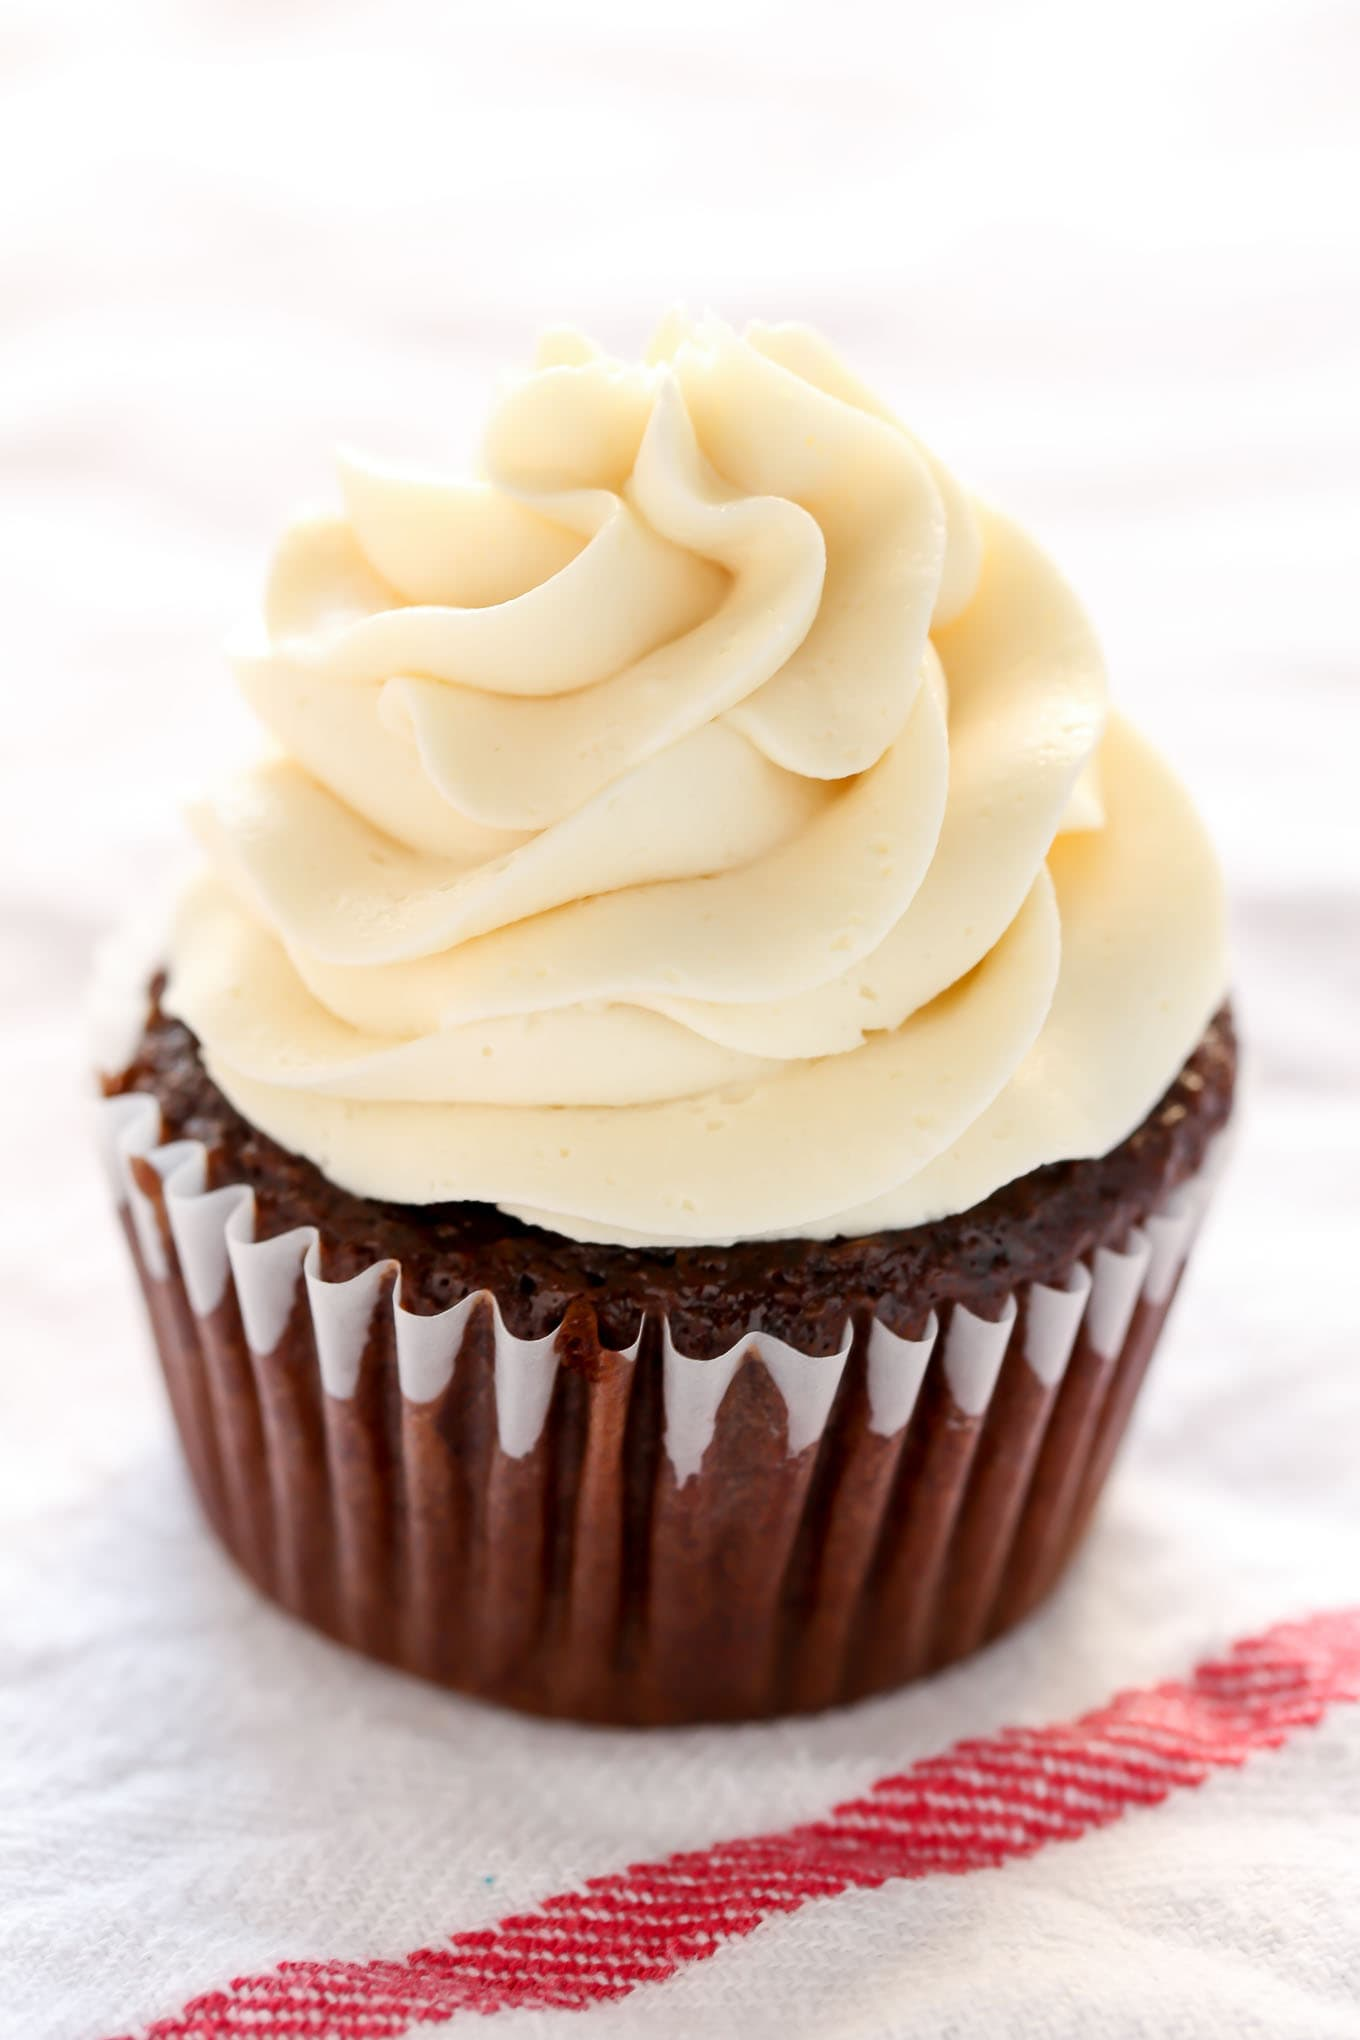 How to Make Cupcake Frosting